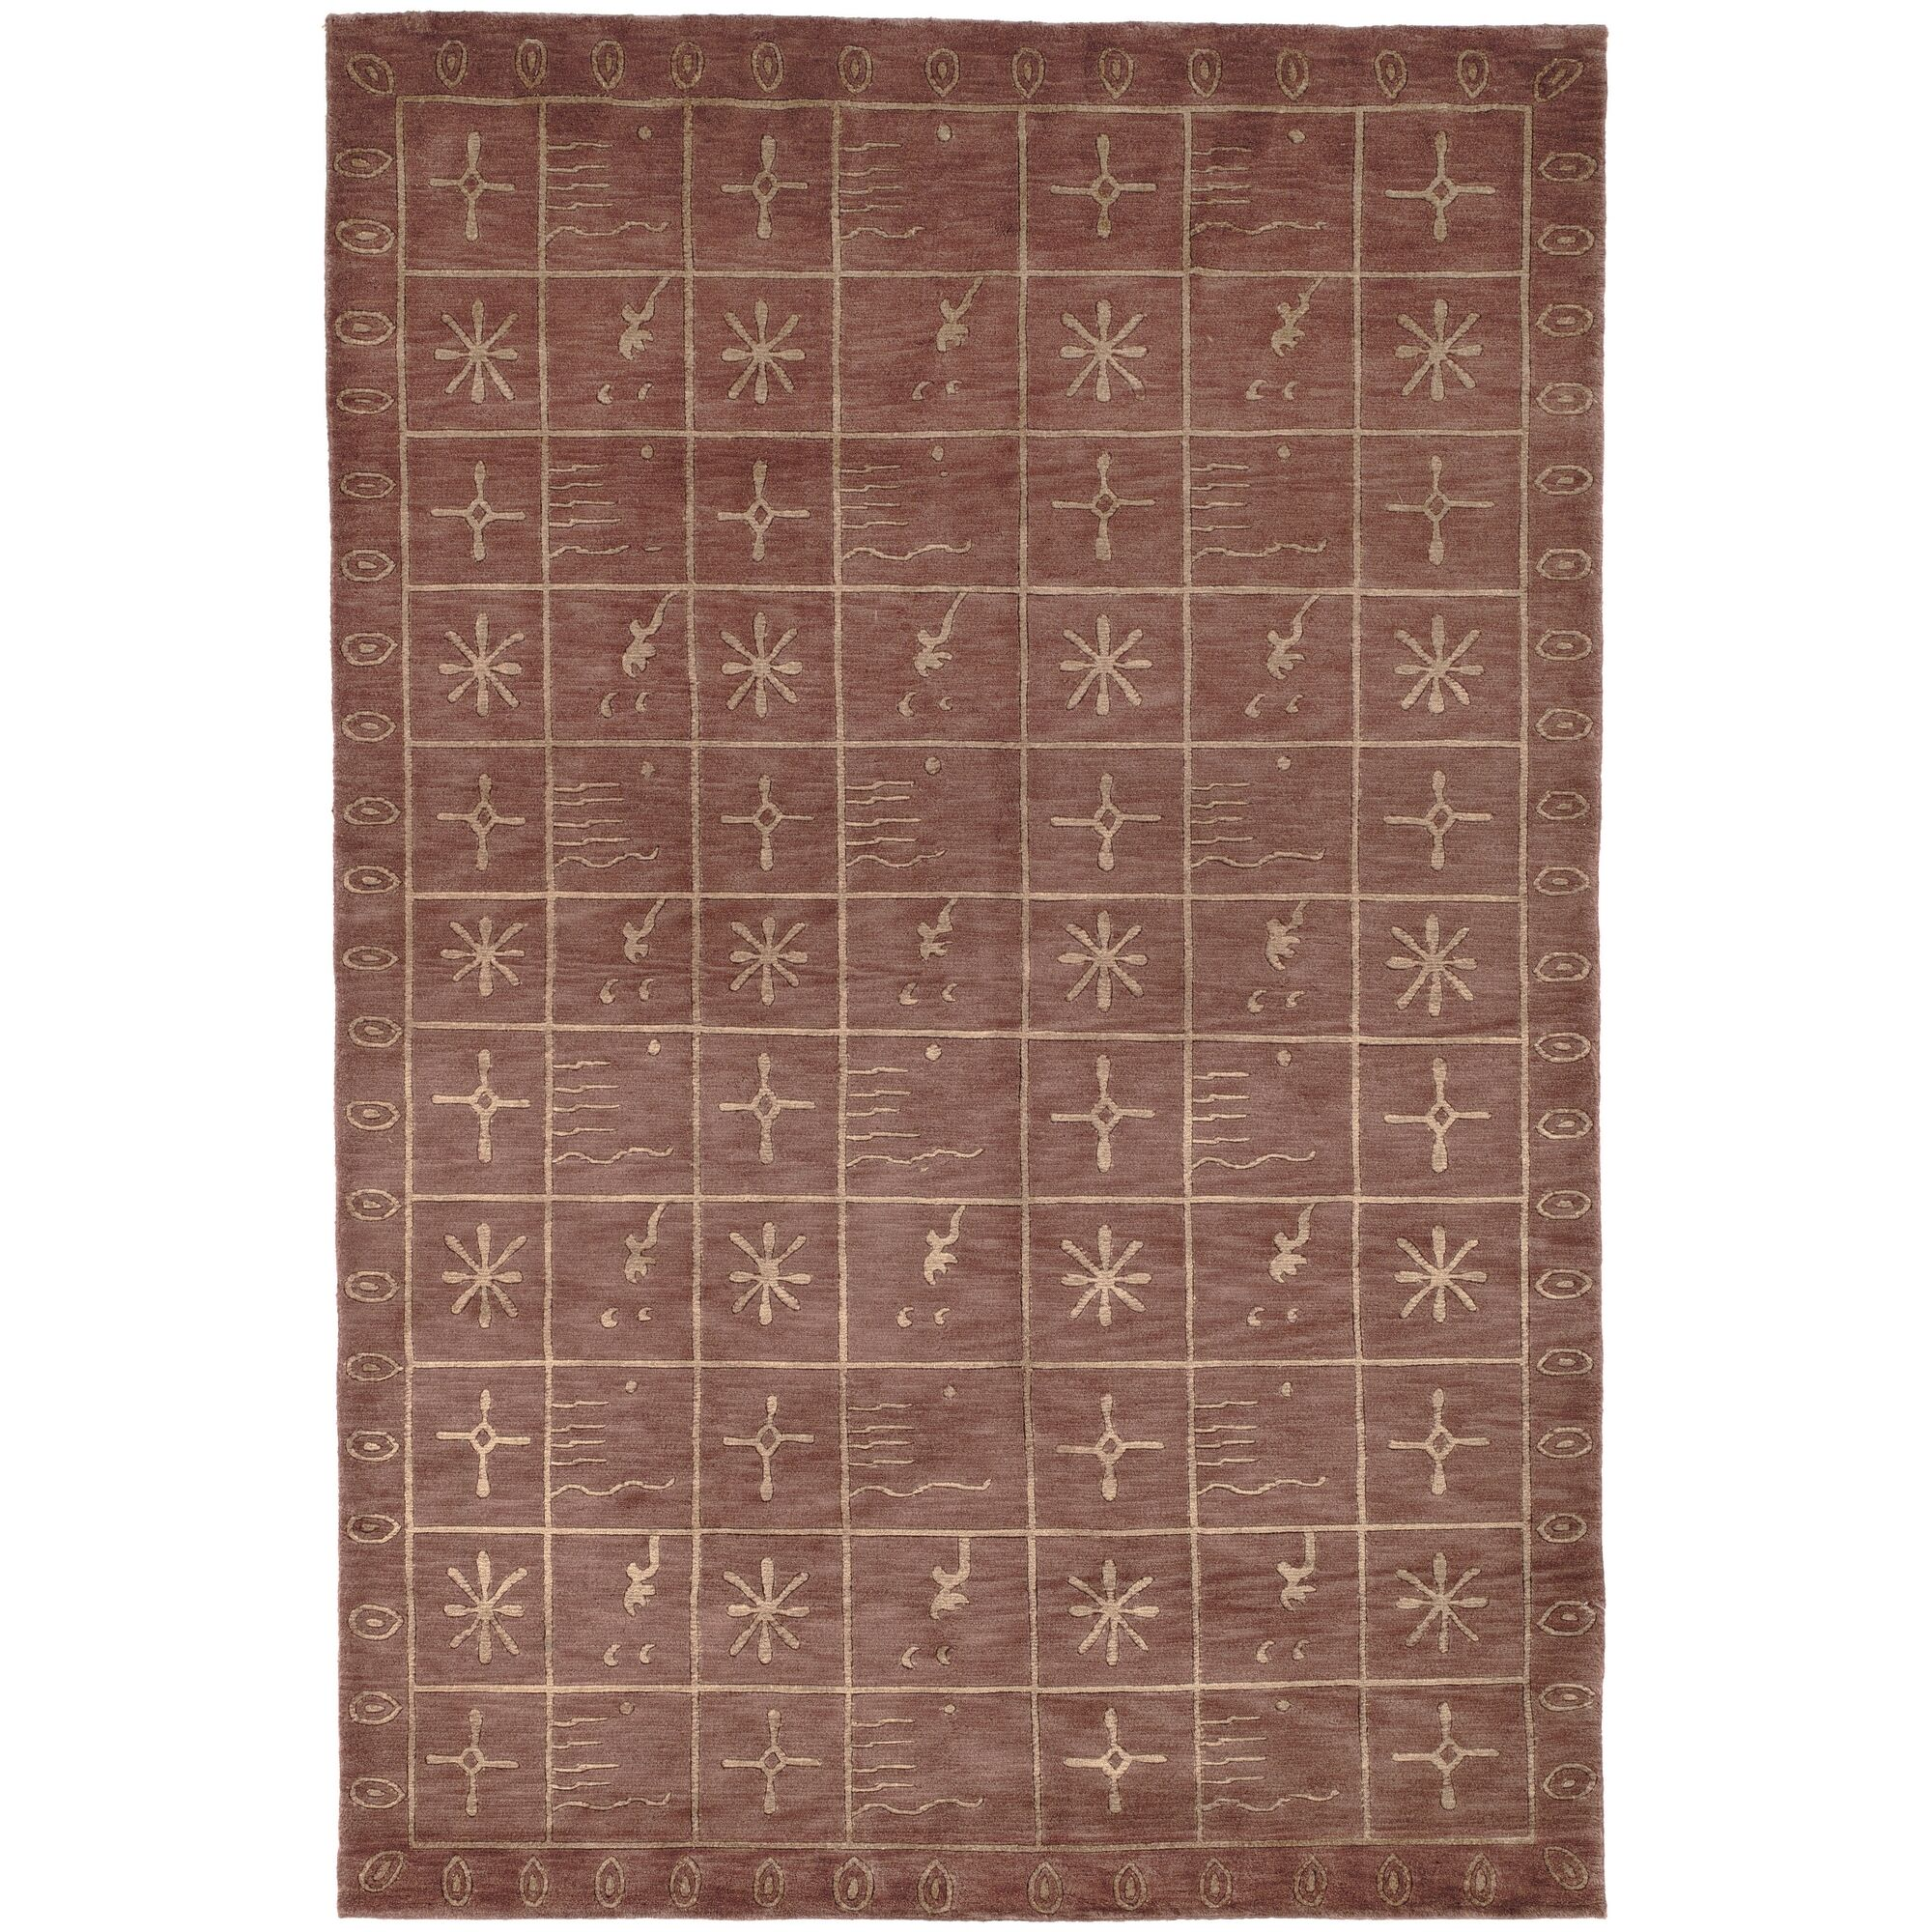 Plum Pictogram Brown Area Rug Rug Size: Rectangle 8' x 10'